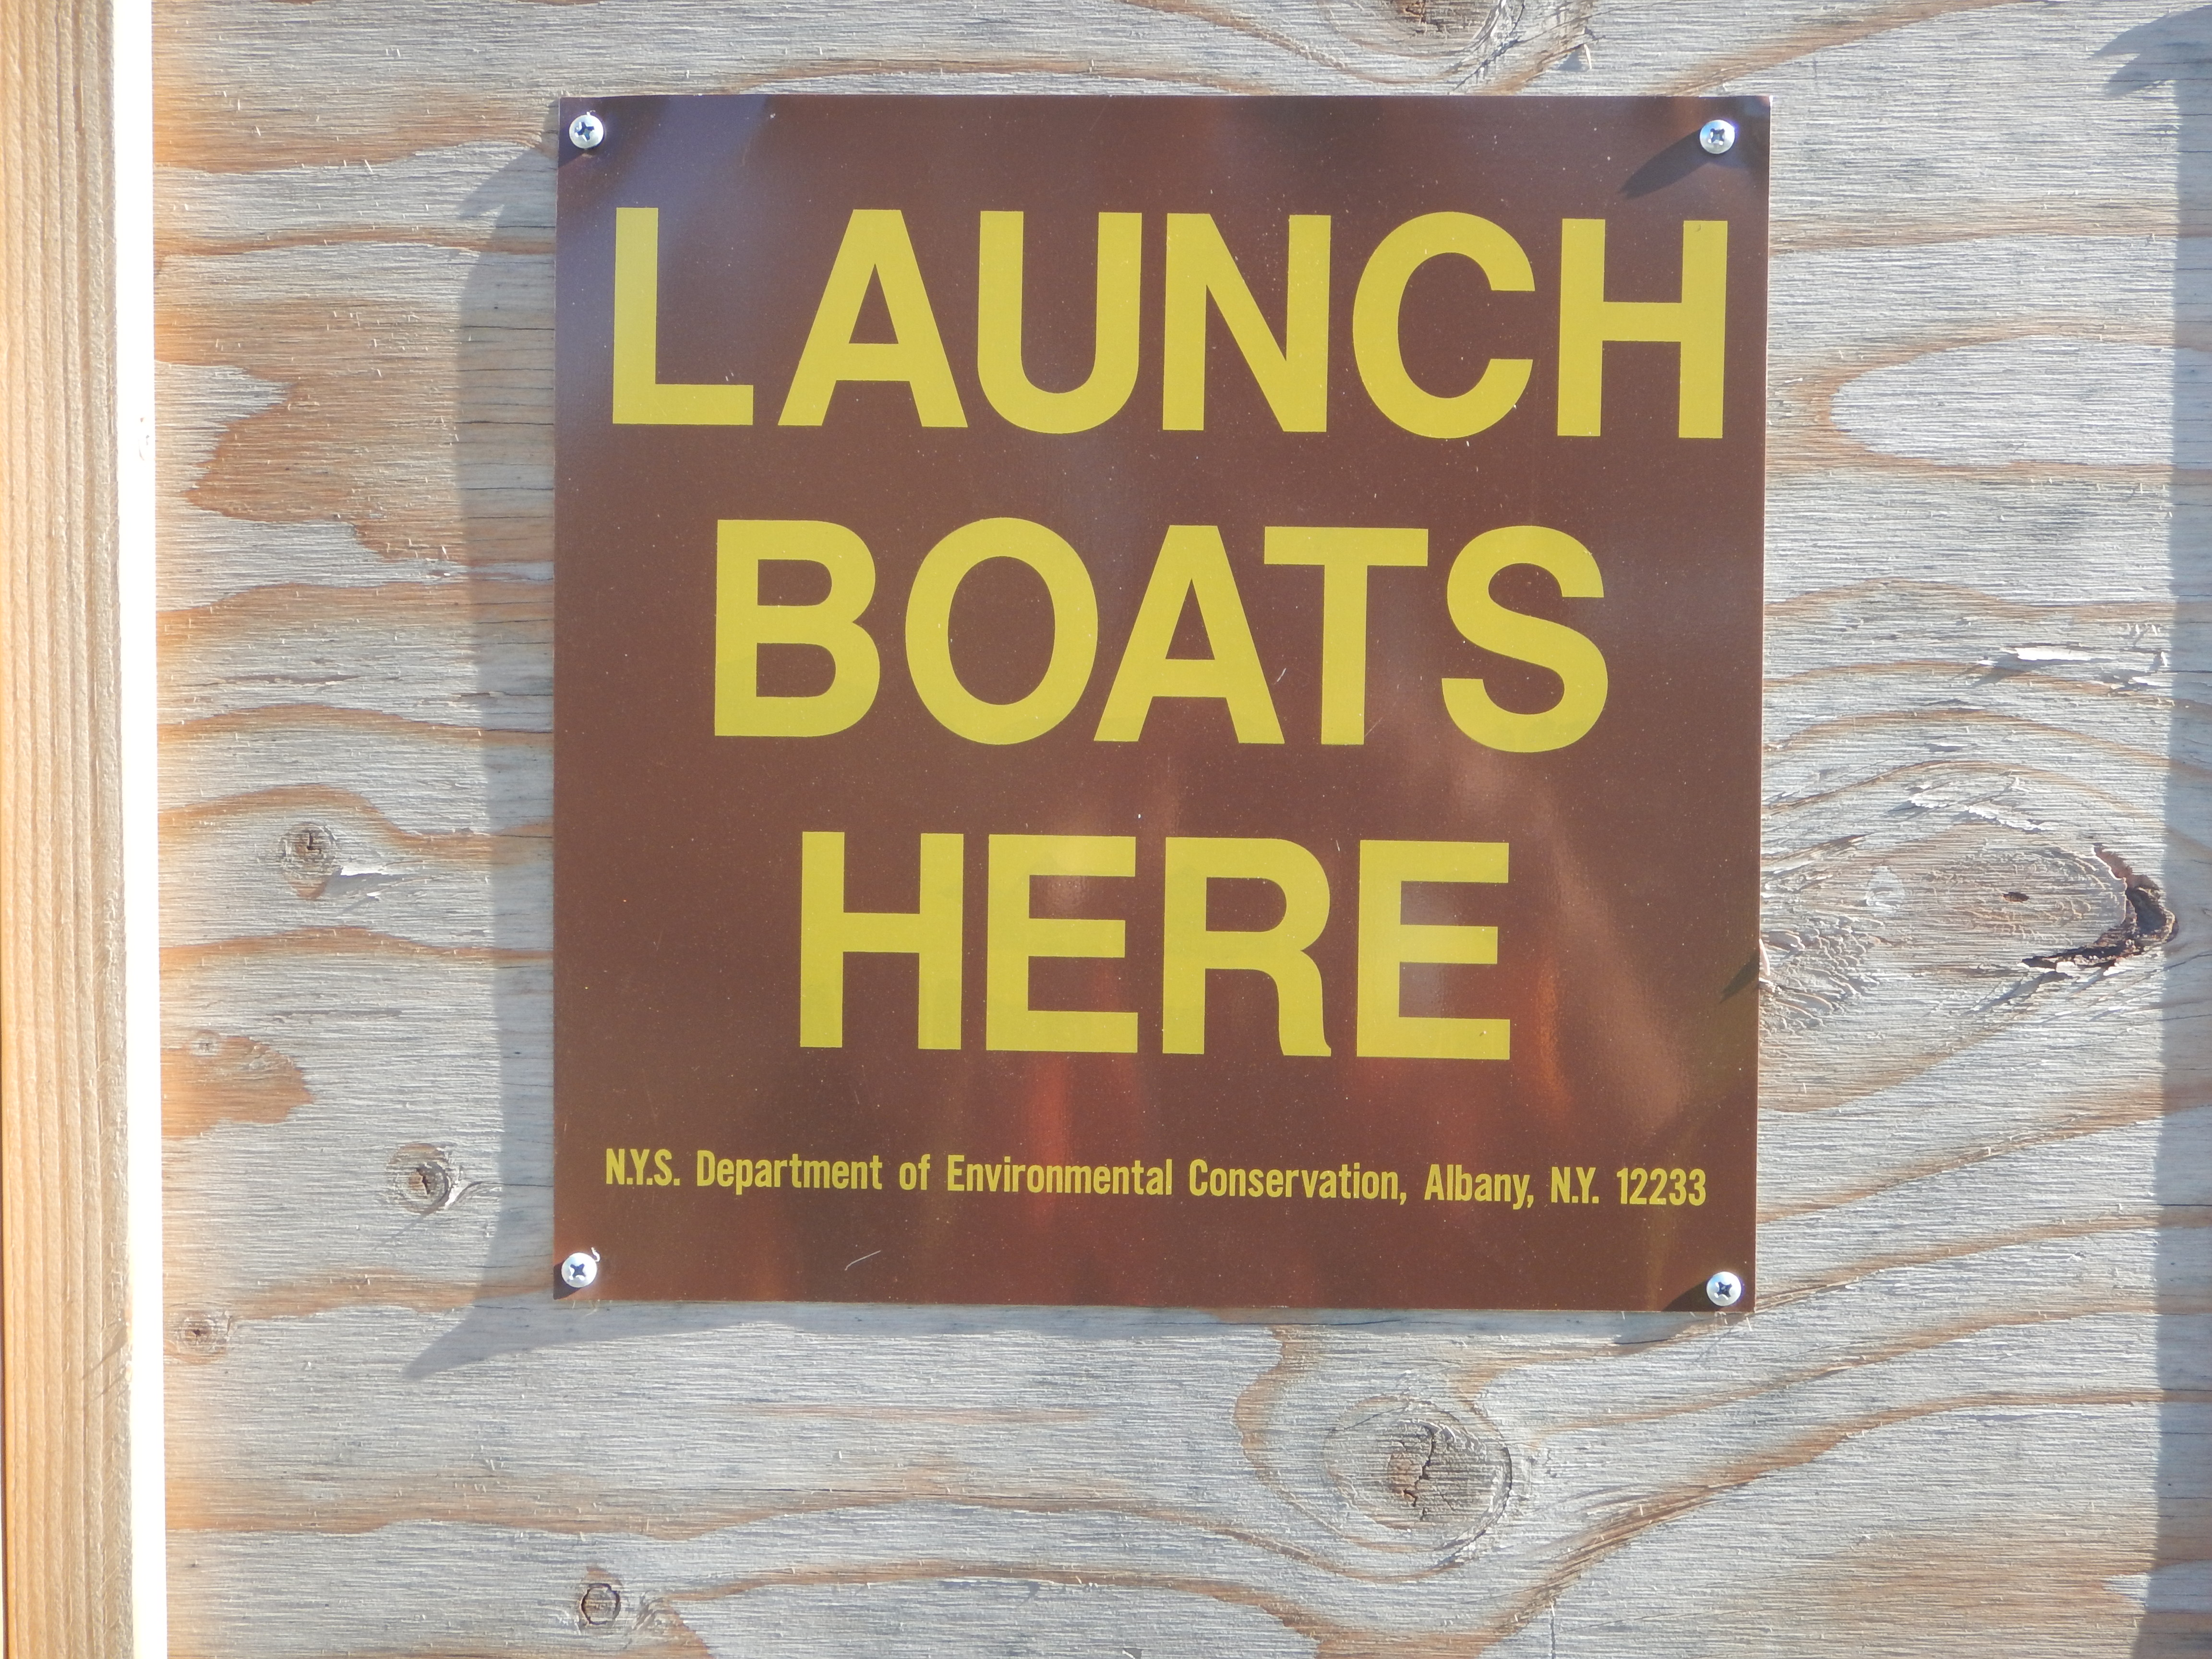 An encouraging sign at Old Place Creek launch, Staten Island, 10/31/2016